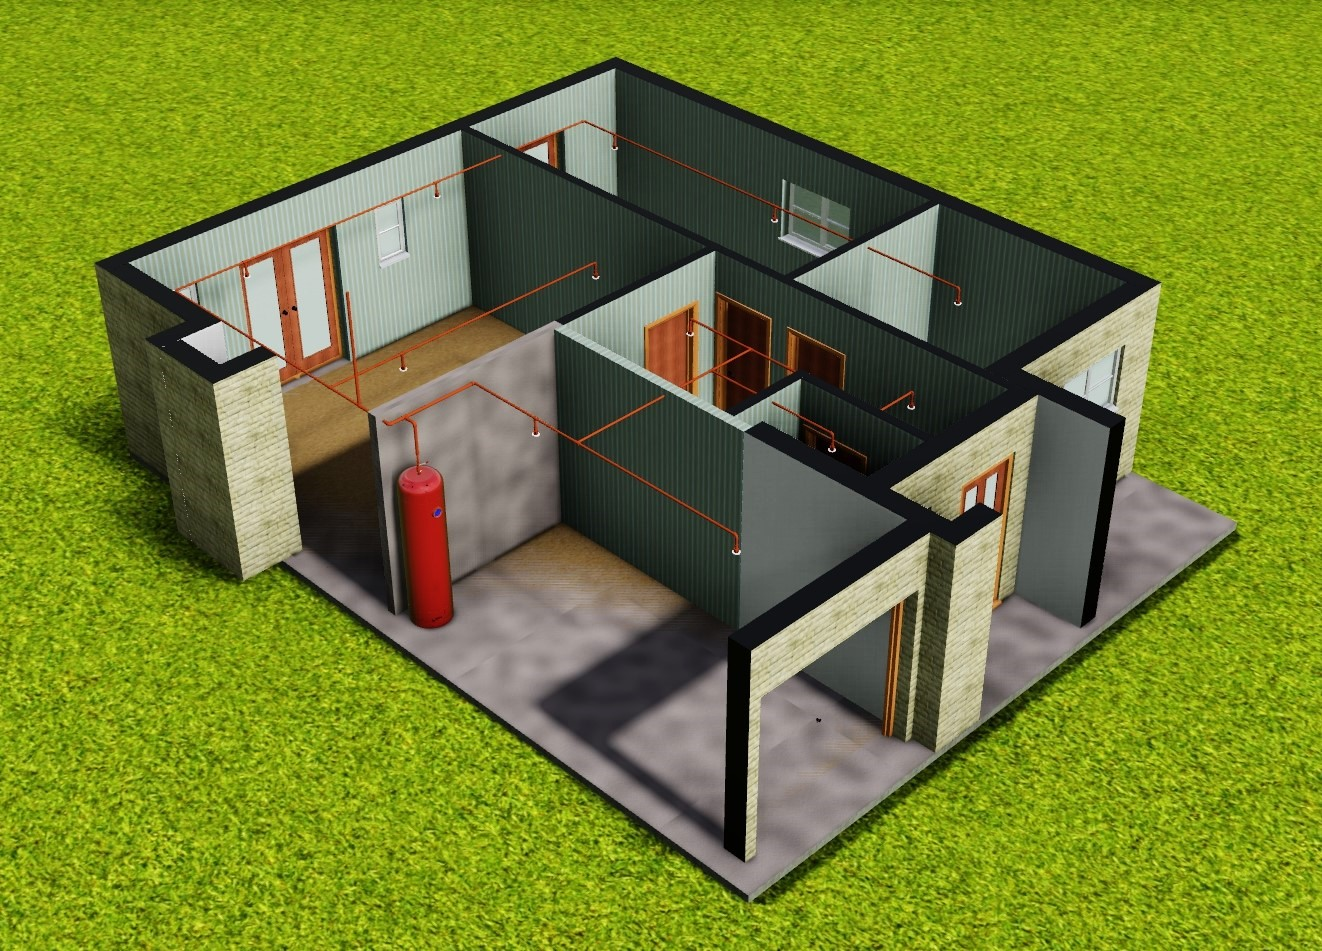 colour image showing the ground floor view of a notional 2 storey 4 bedroom detached - Cylinder Home Floor Plans